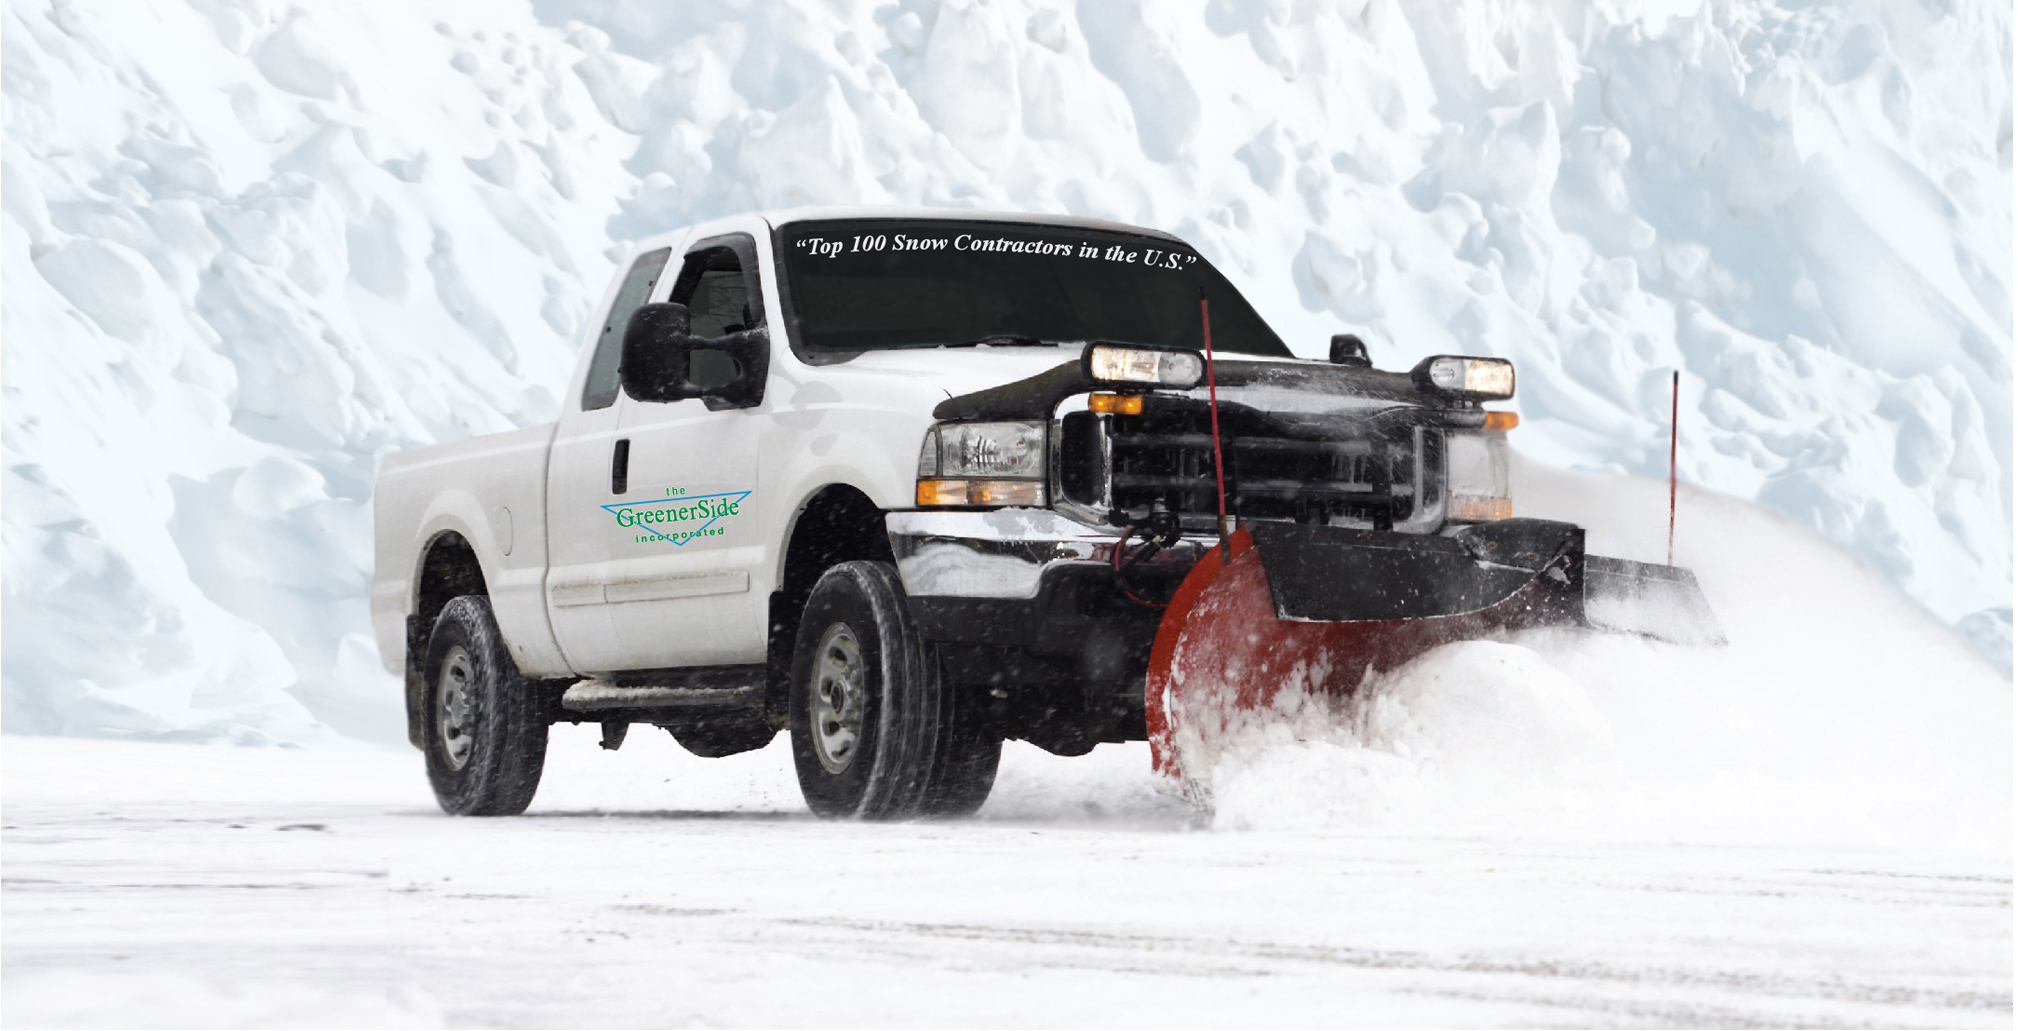 WE TAKE A ZERO TOLERANCE APPROACH WHEN IT COMES TO MANAGING SNOW & ICE